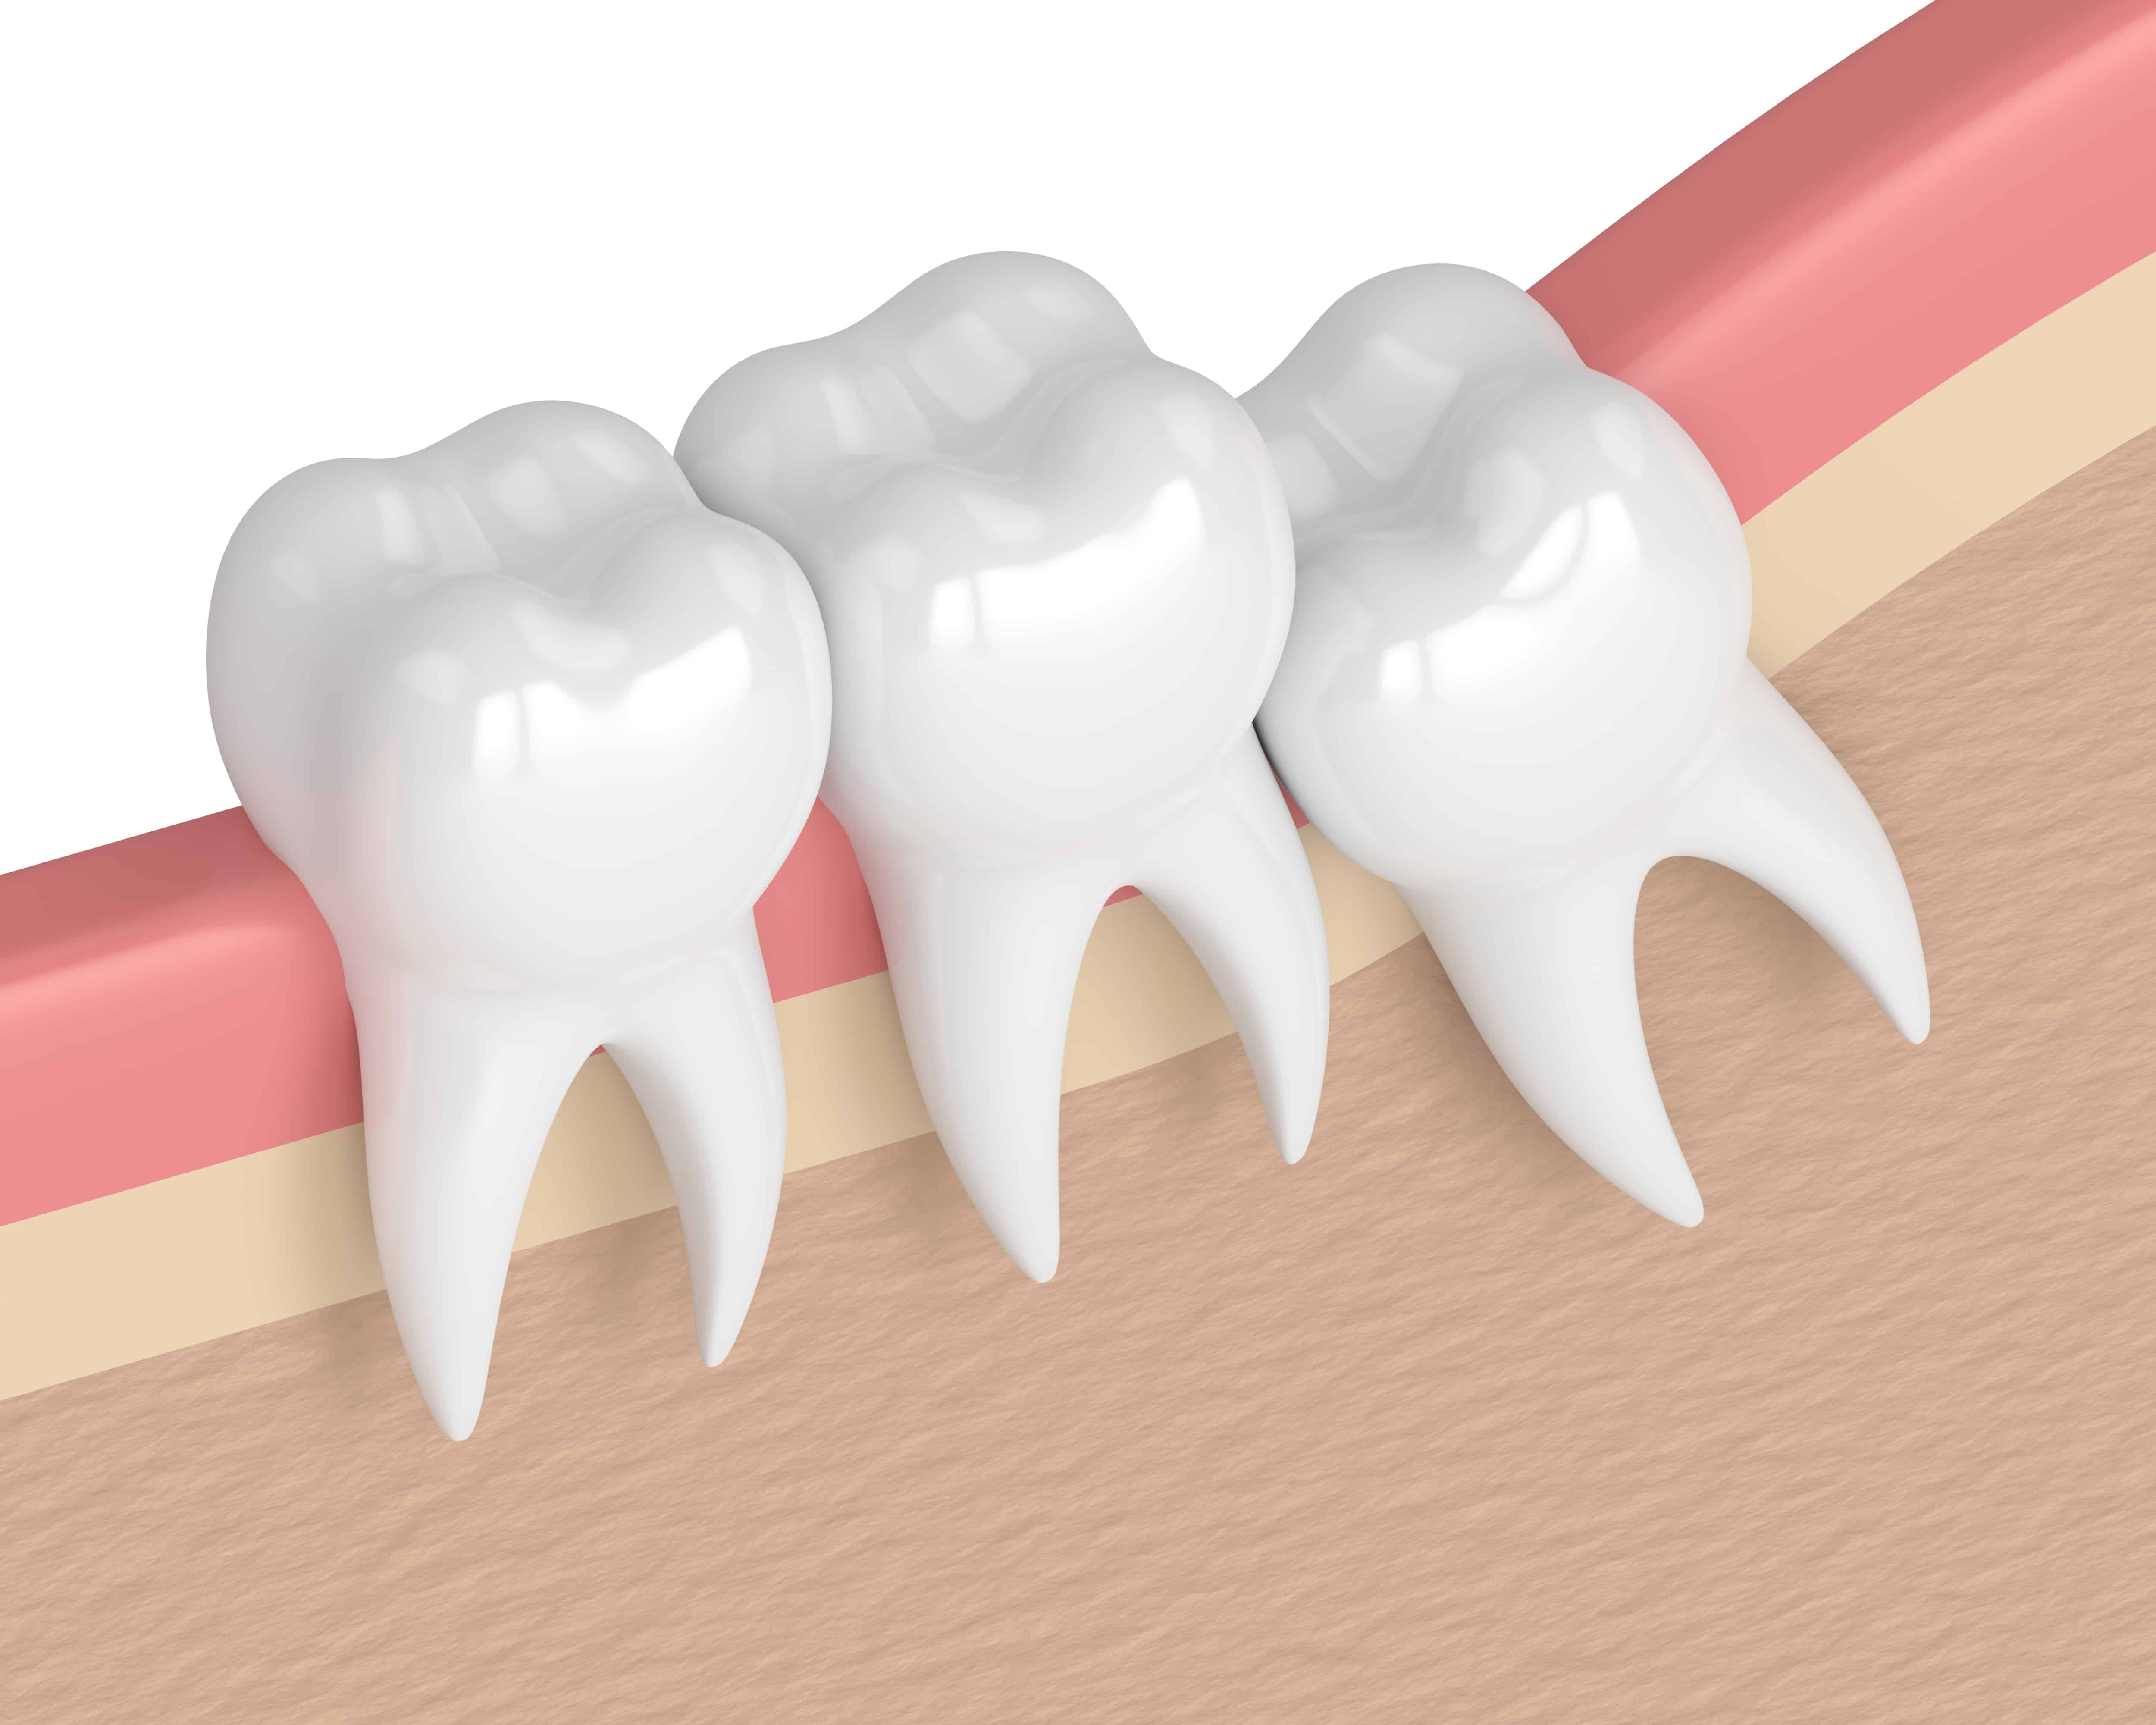 Extraction dents sagesse Montreal